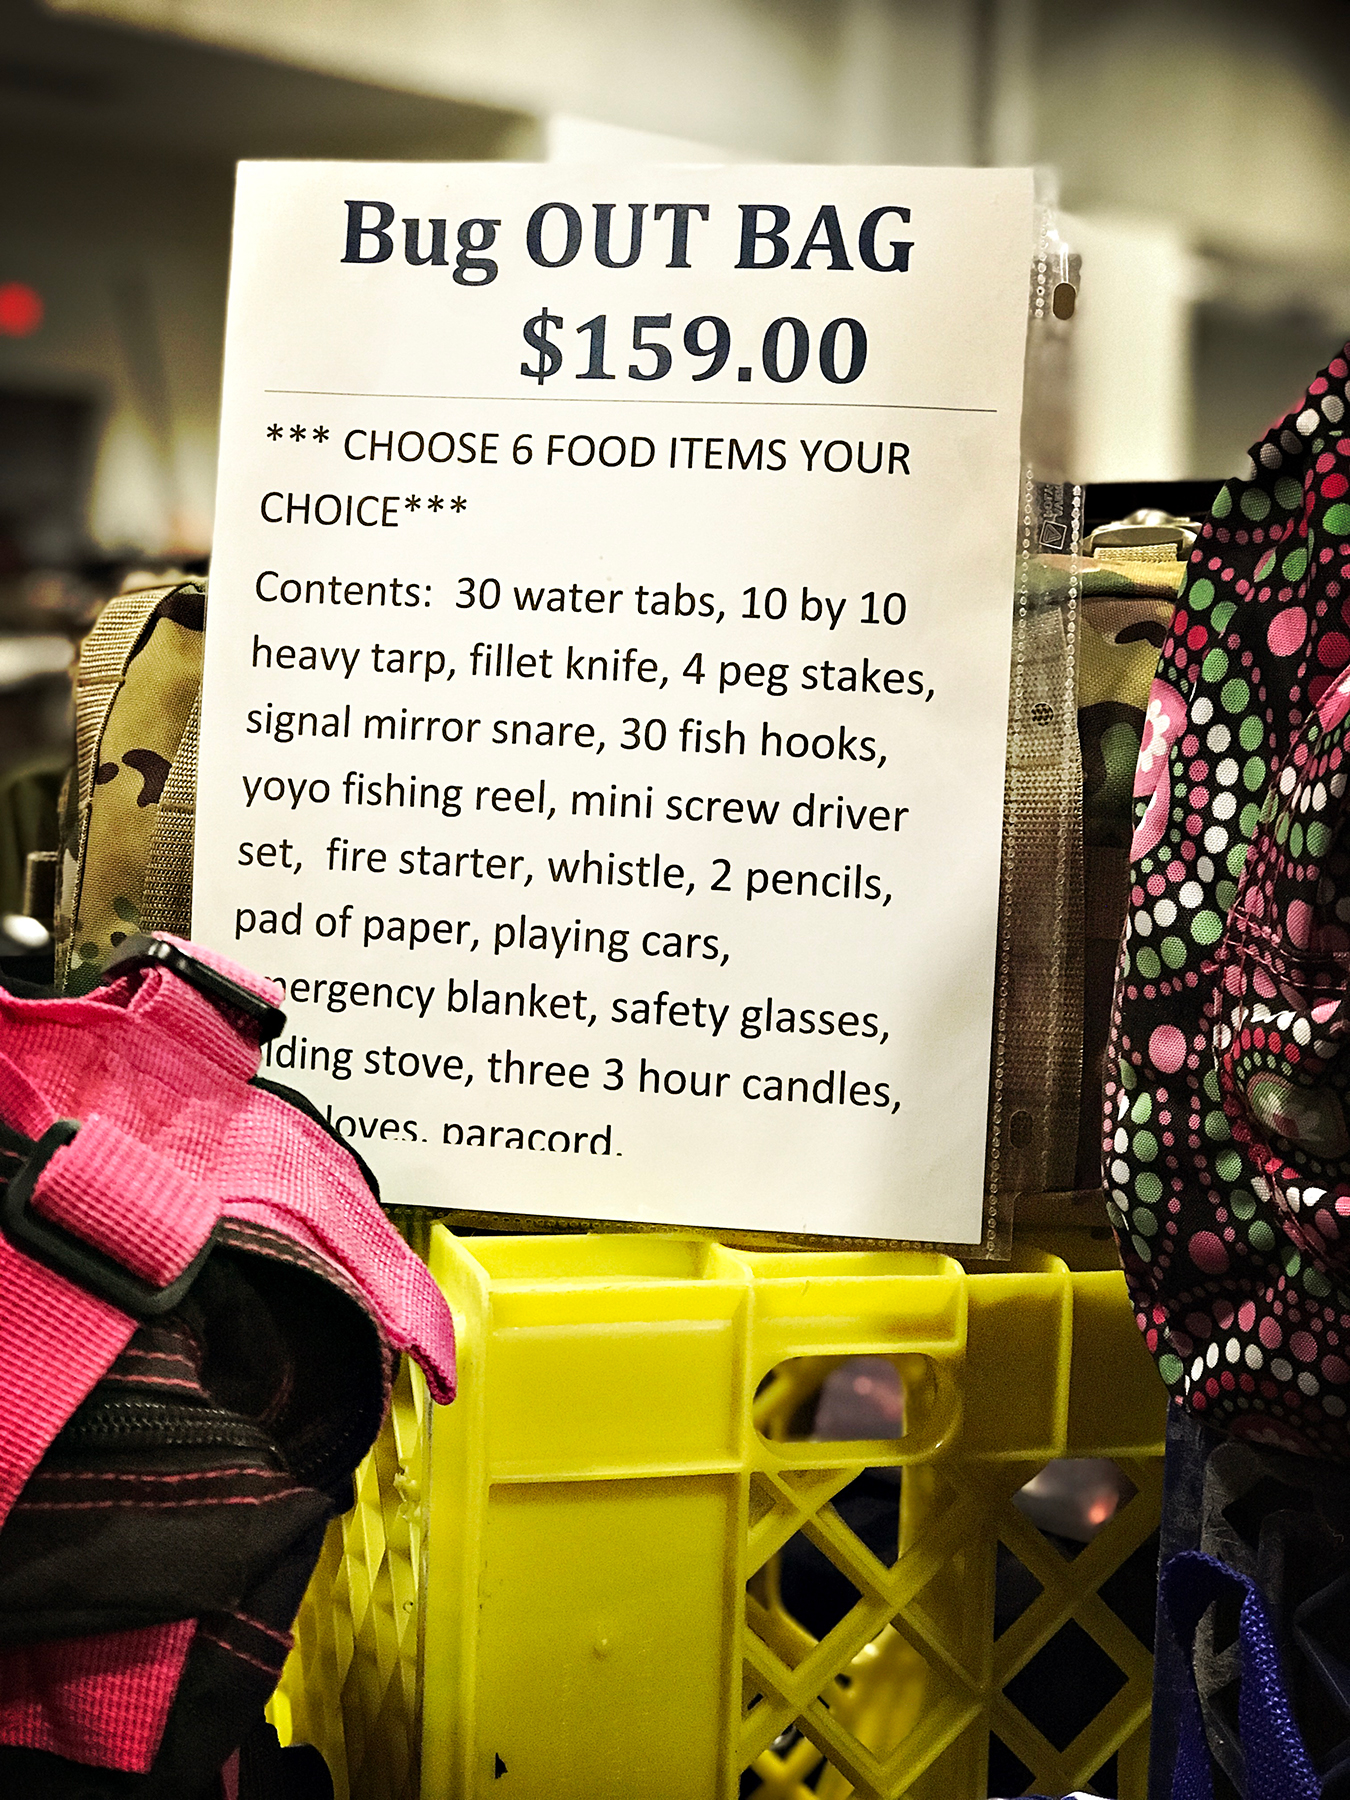 Bug-out-bags for sale in Louisville.